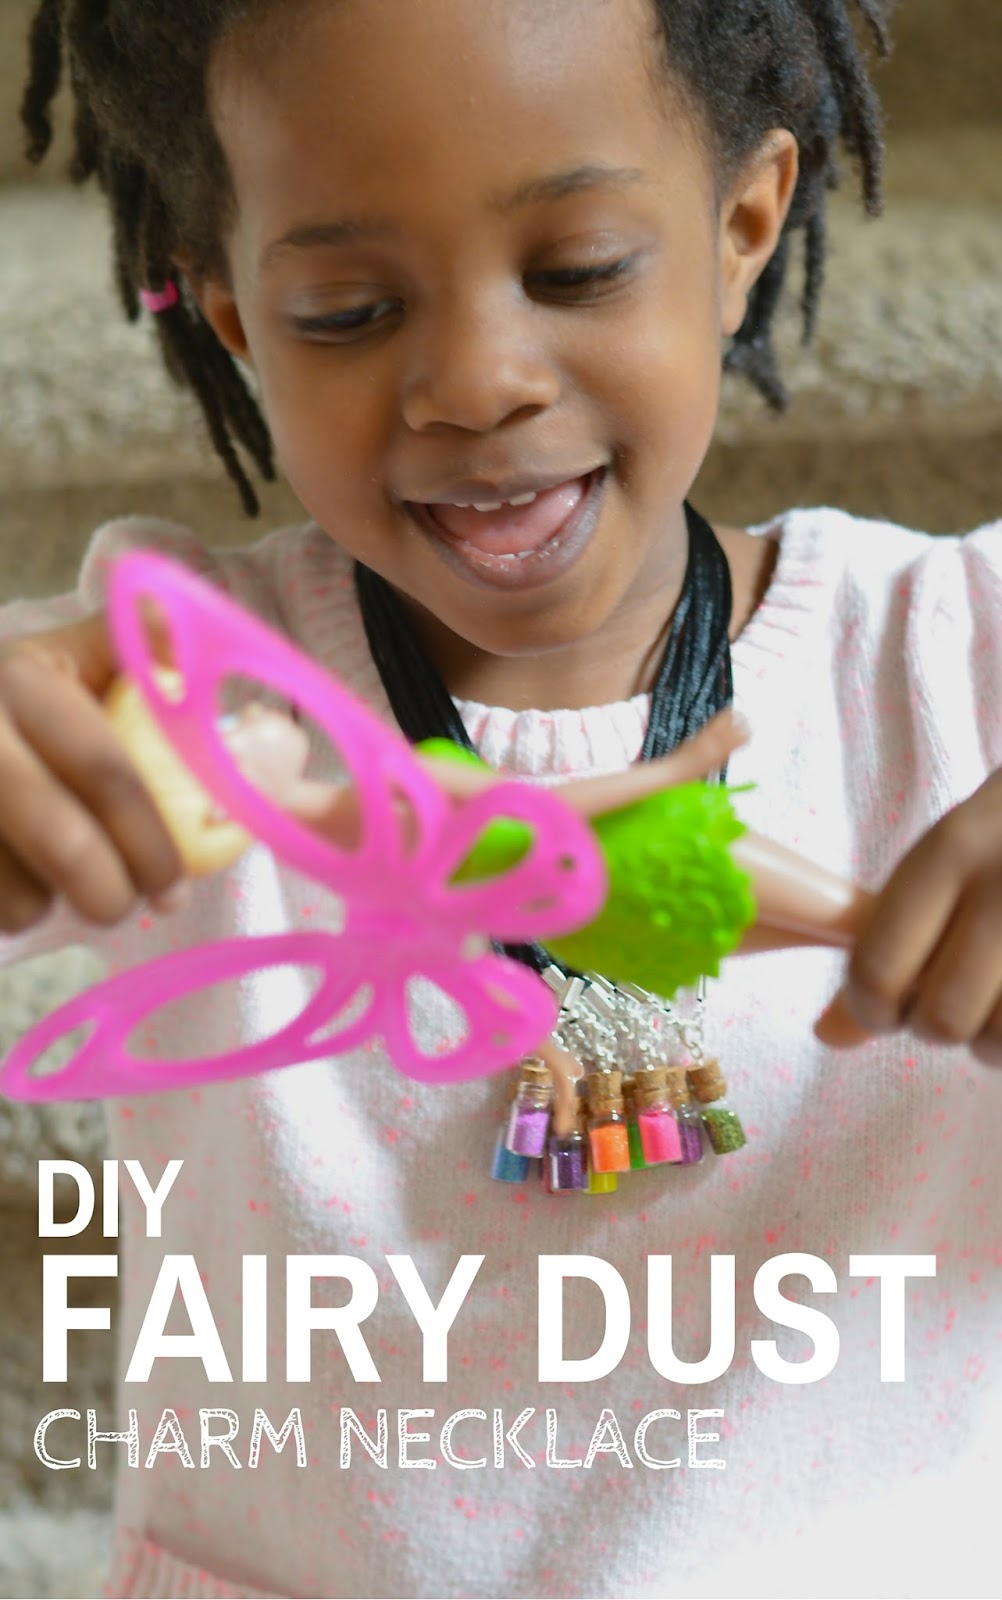 diy fairy dust charm necklace #shop